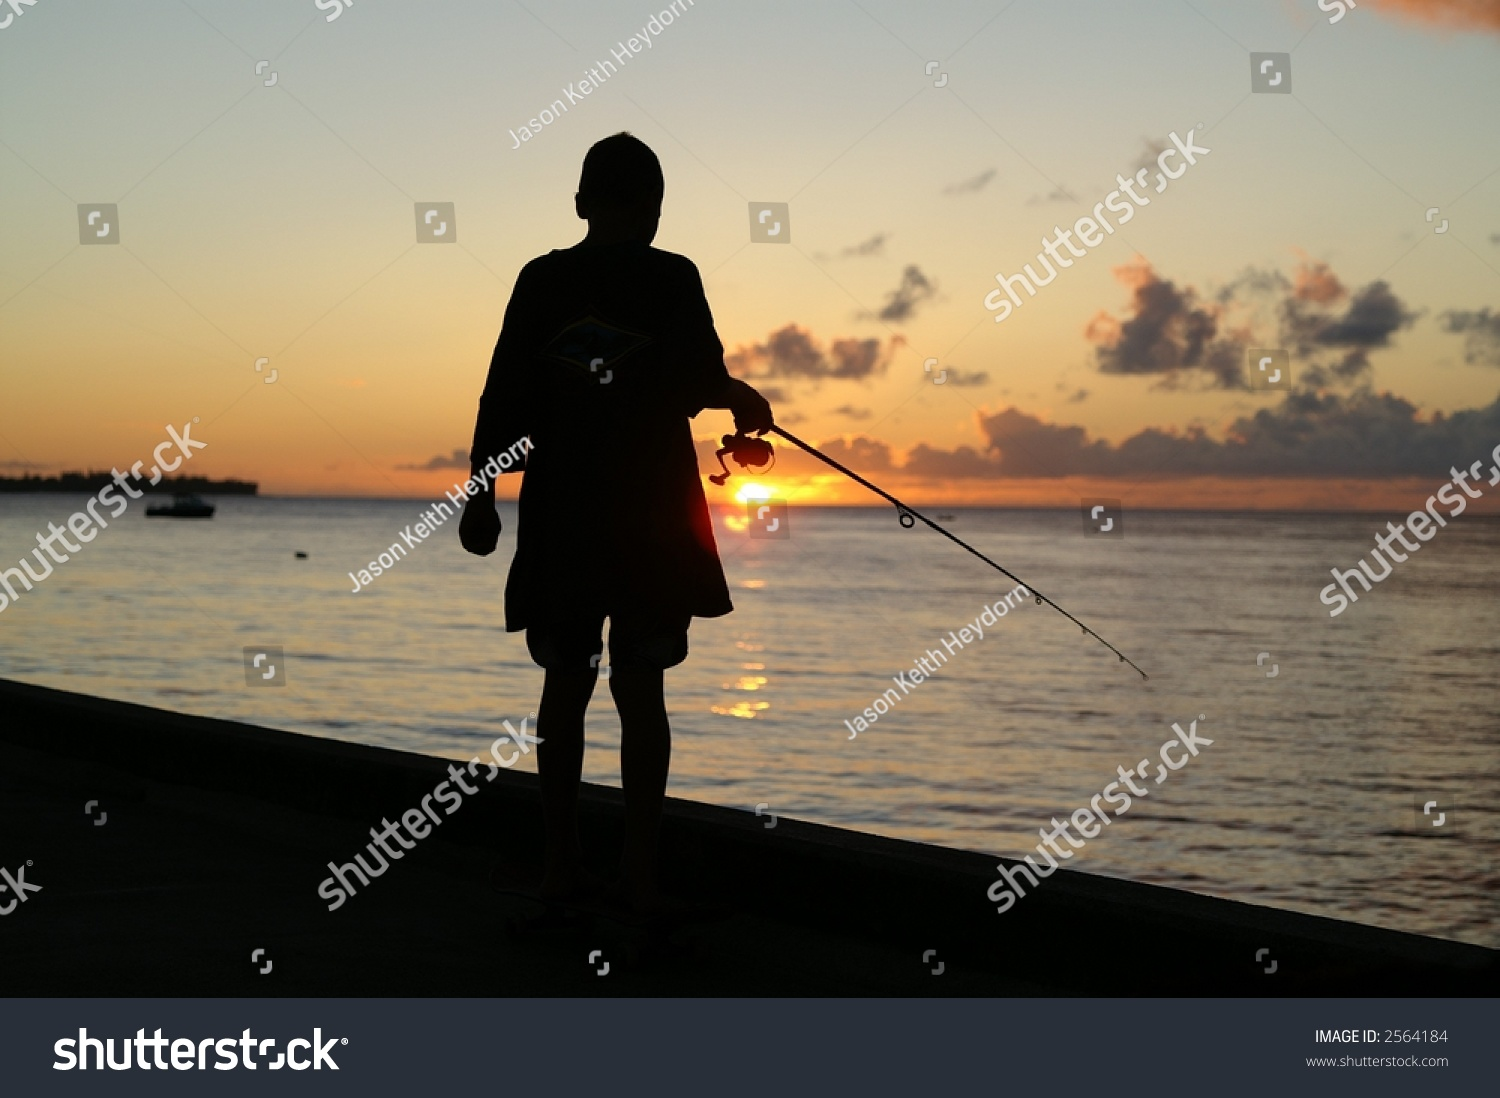 Boy fishing off pier stock photo 2564184 shutterstock for Fishing off a pier